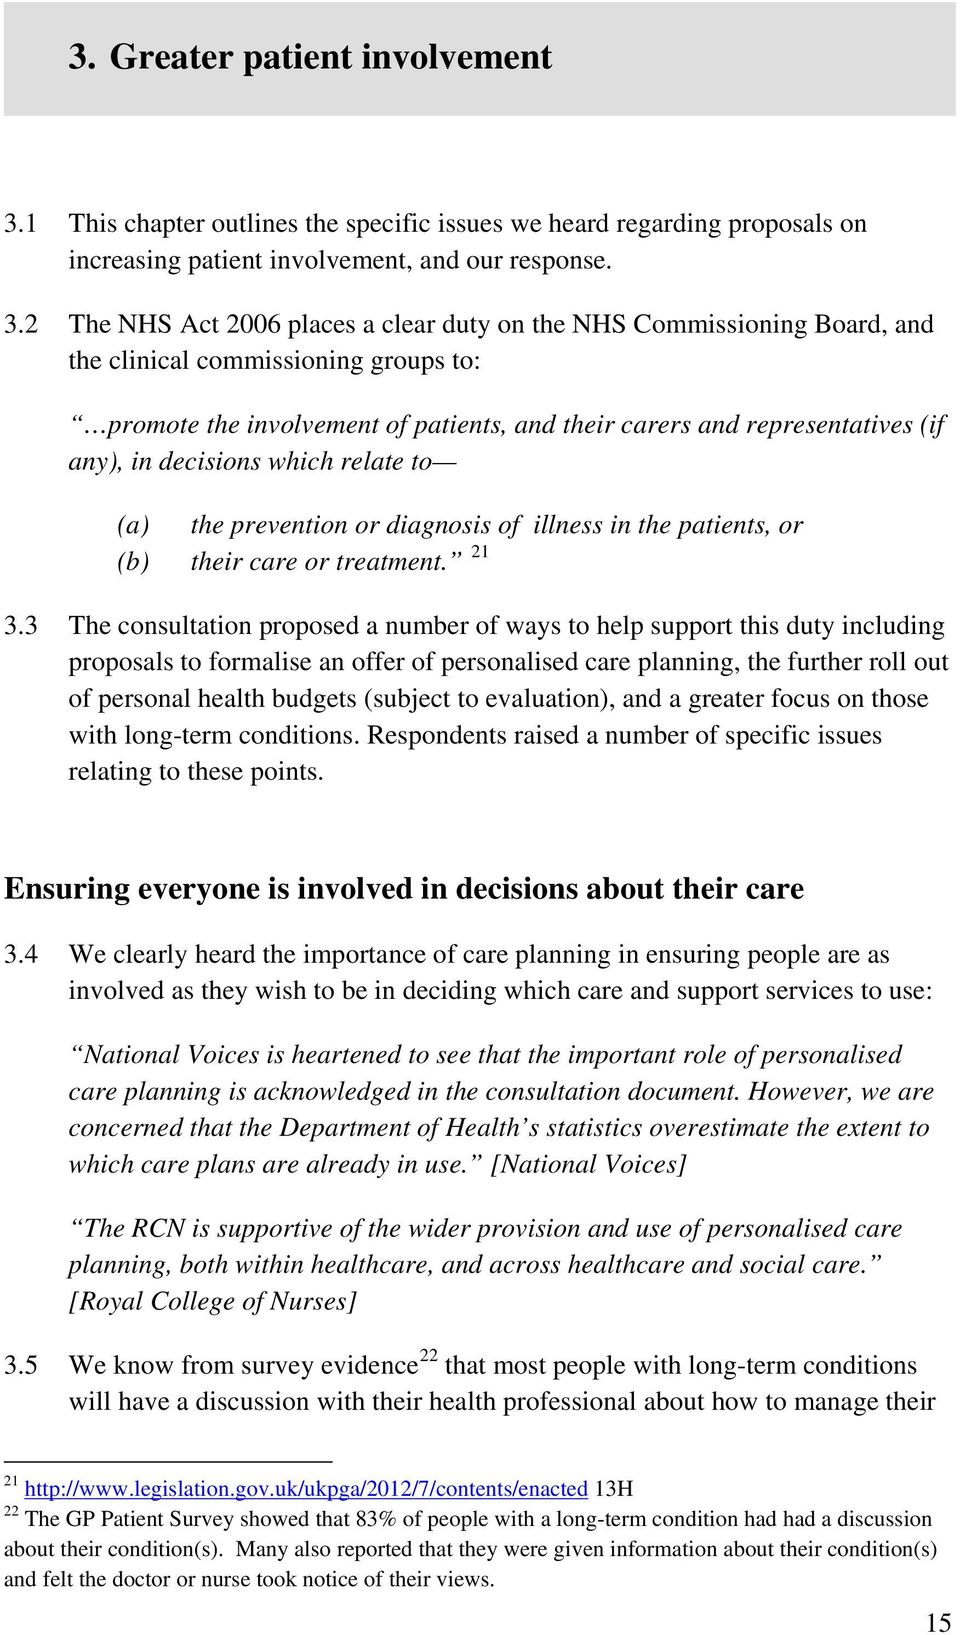 2 The NHS Act 2006 places a clear duty on the NHS Commissioning Board, and the clinical commissioning groups to: promote the involvement of patients, and their carers and representatives (if any), in